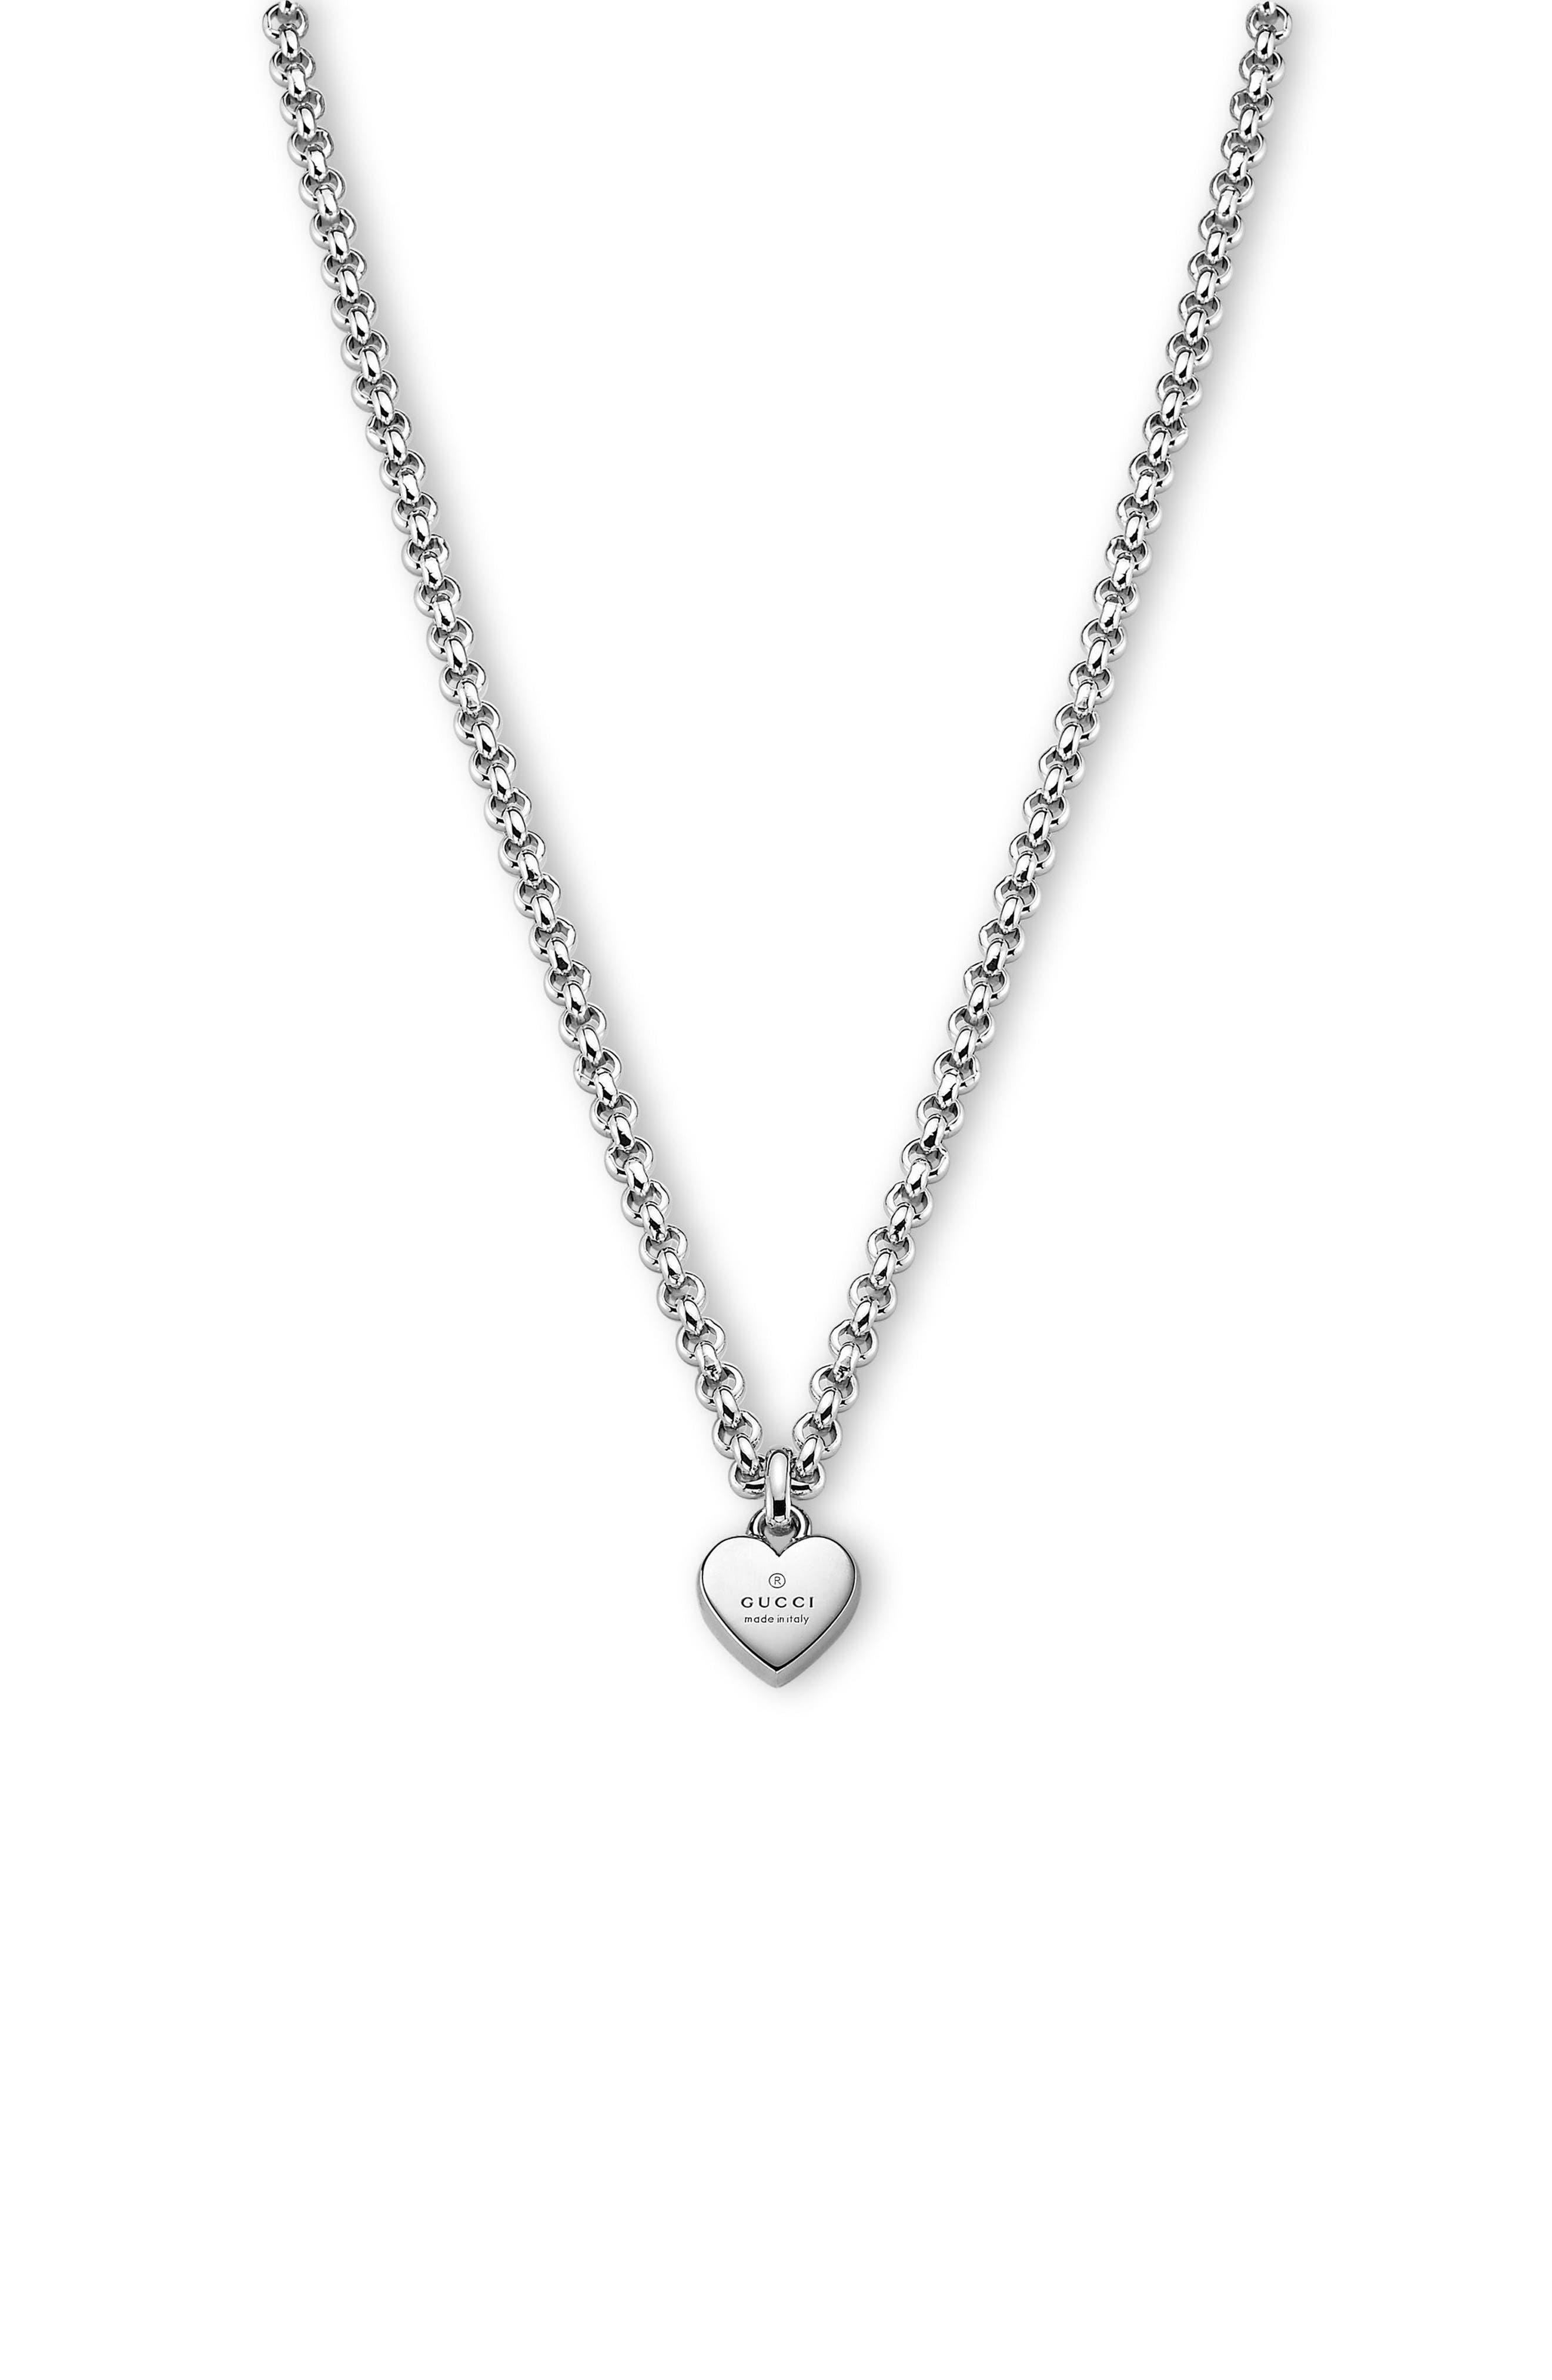 Trademark Heart Necklace,                             Main thumbnail 1, color,                             STERLING SILVER